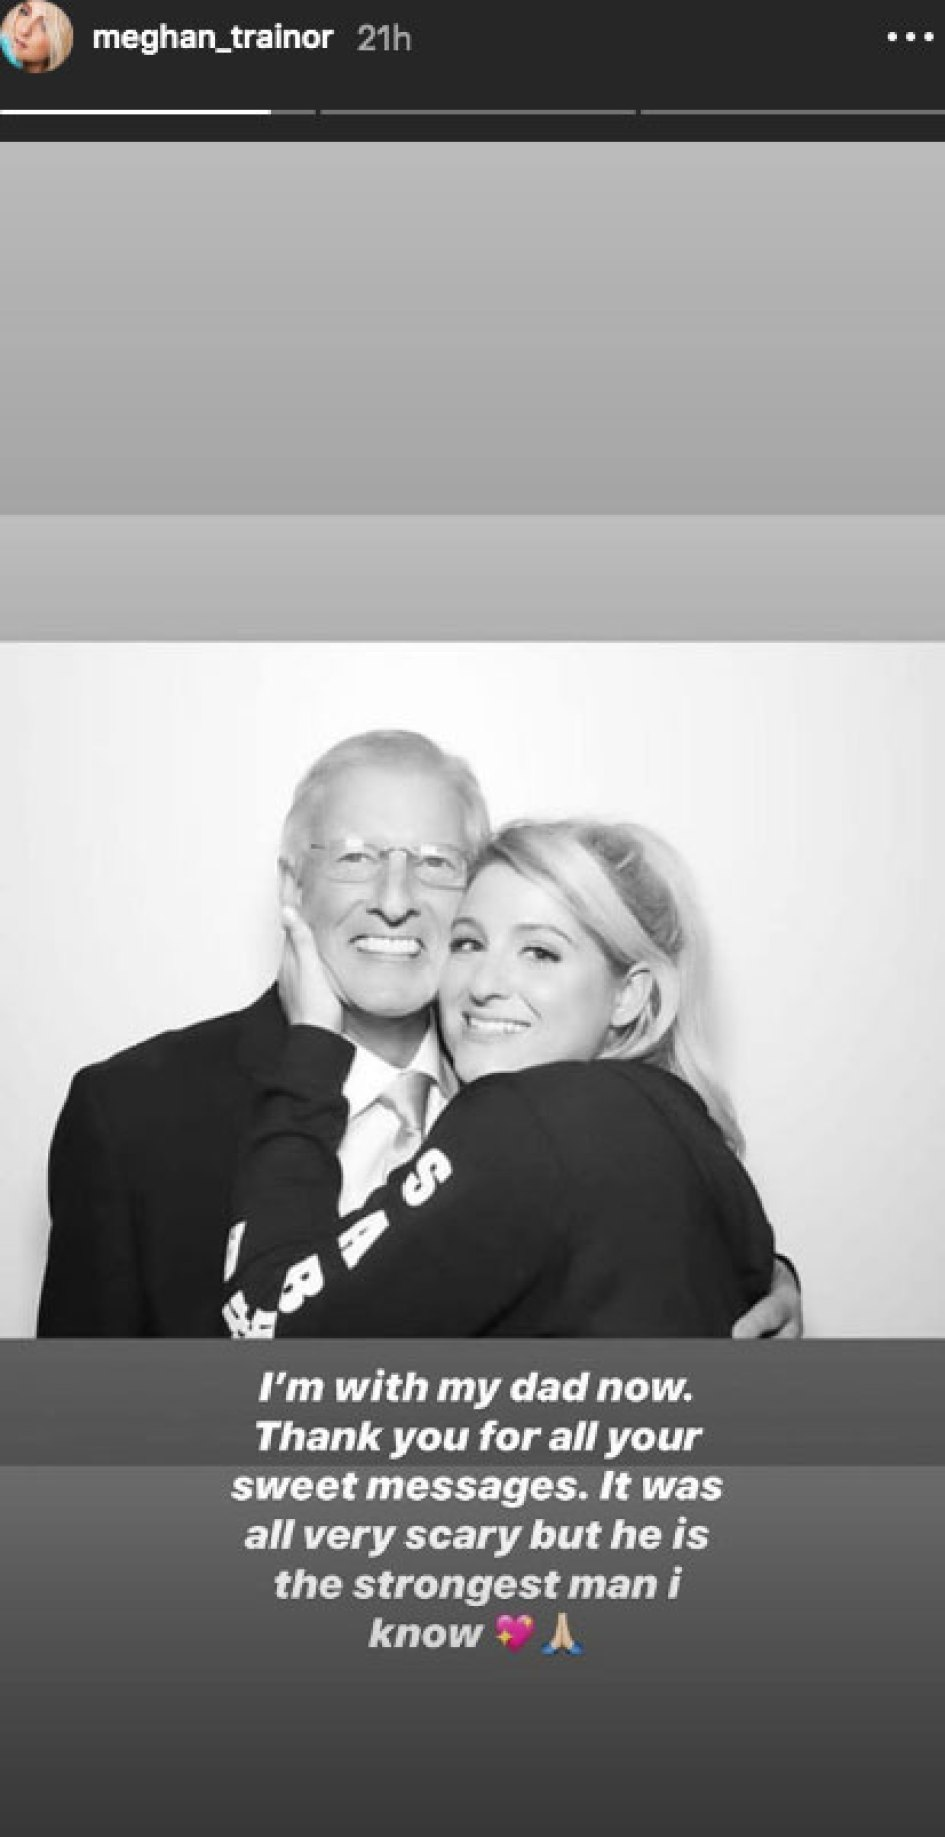 Meghan Trainor Gives Important Update After Her Dad Gary Is Hit By A Car